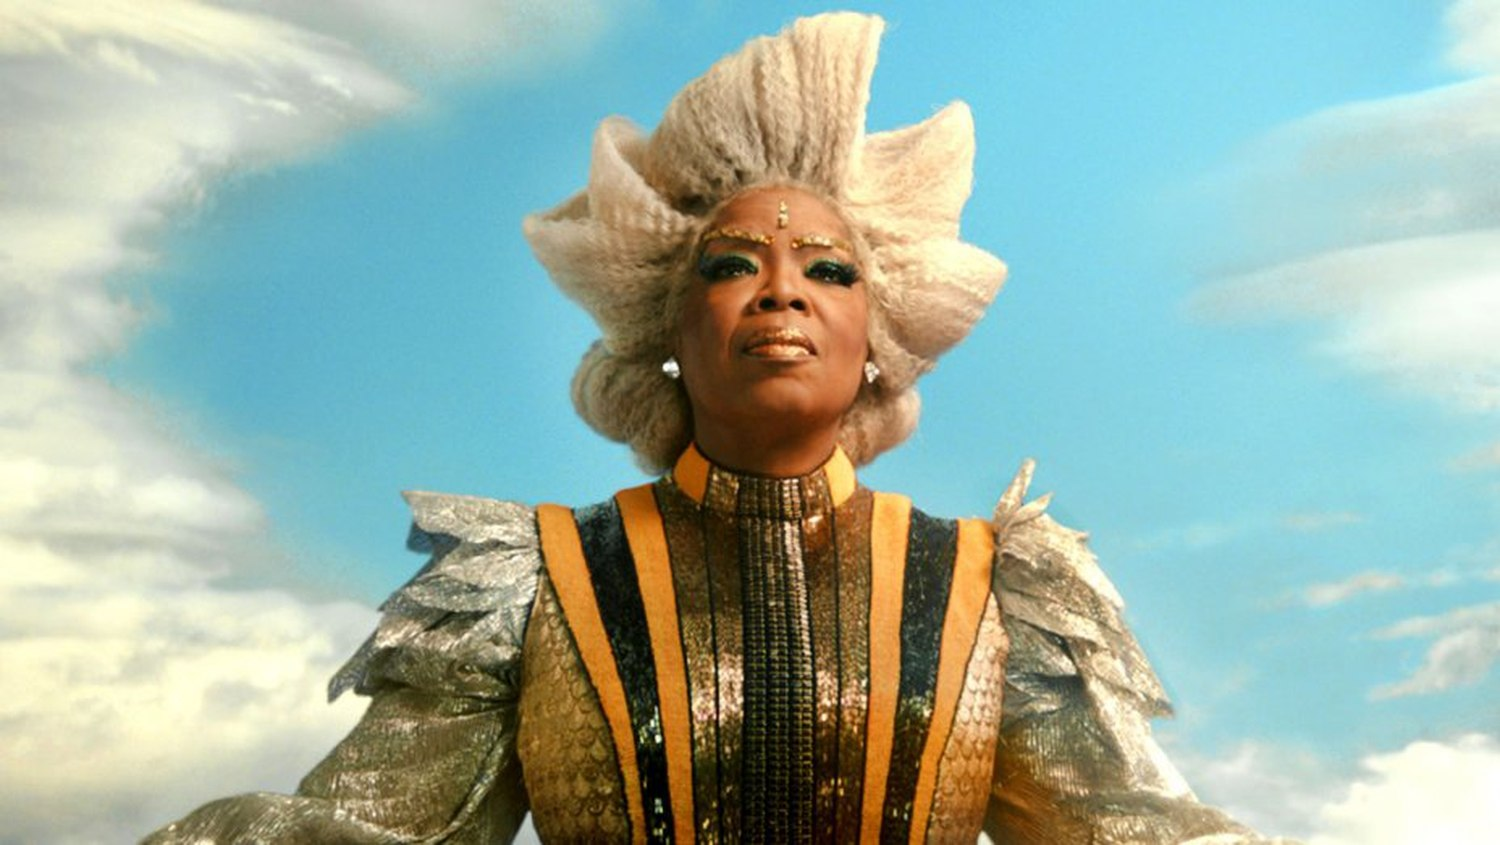 A ridiculously over-costumed Oprah Winfrey as Mrs Which in A Wrinkle in Time (2018)